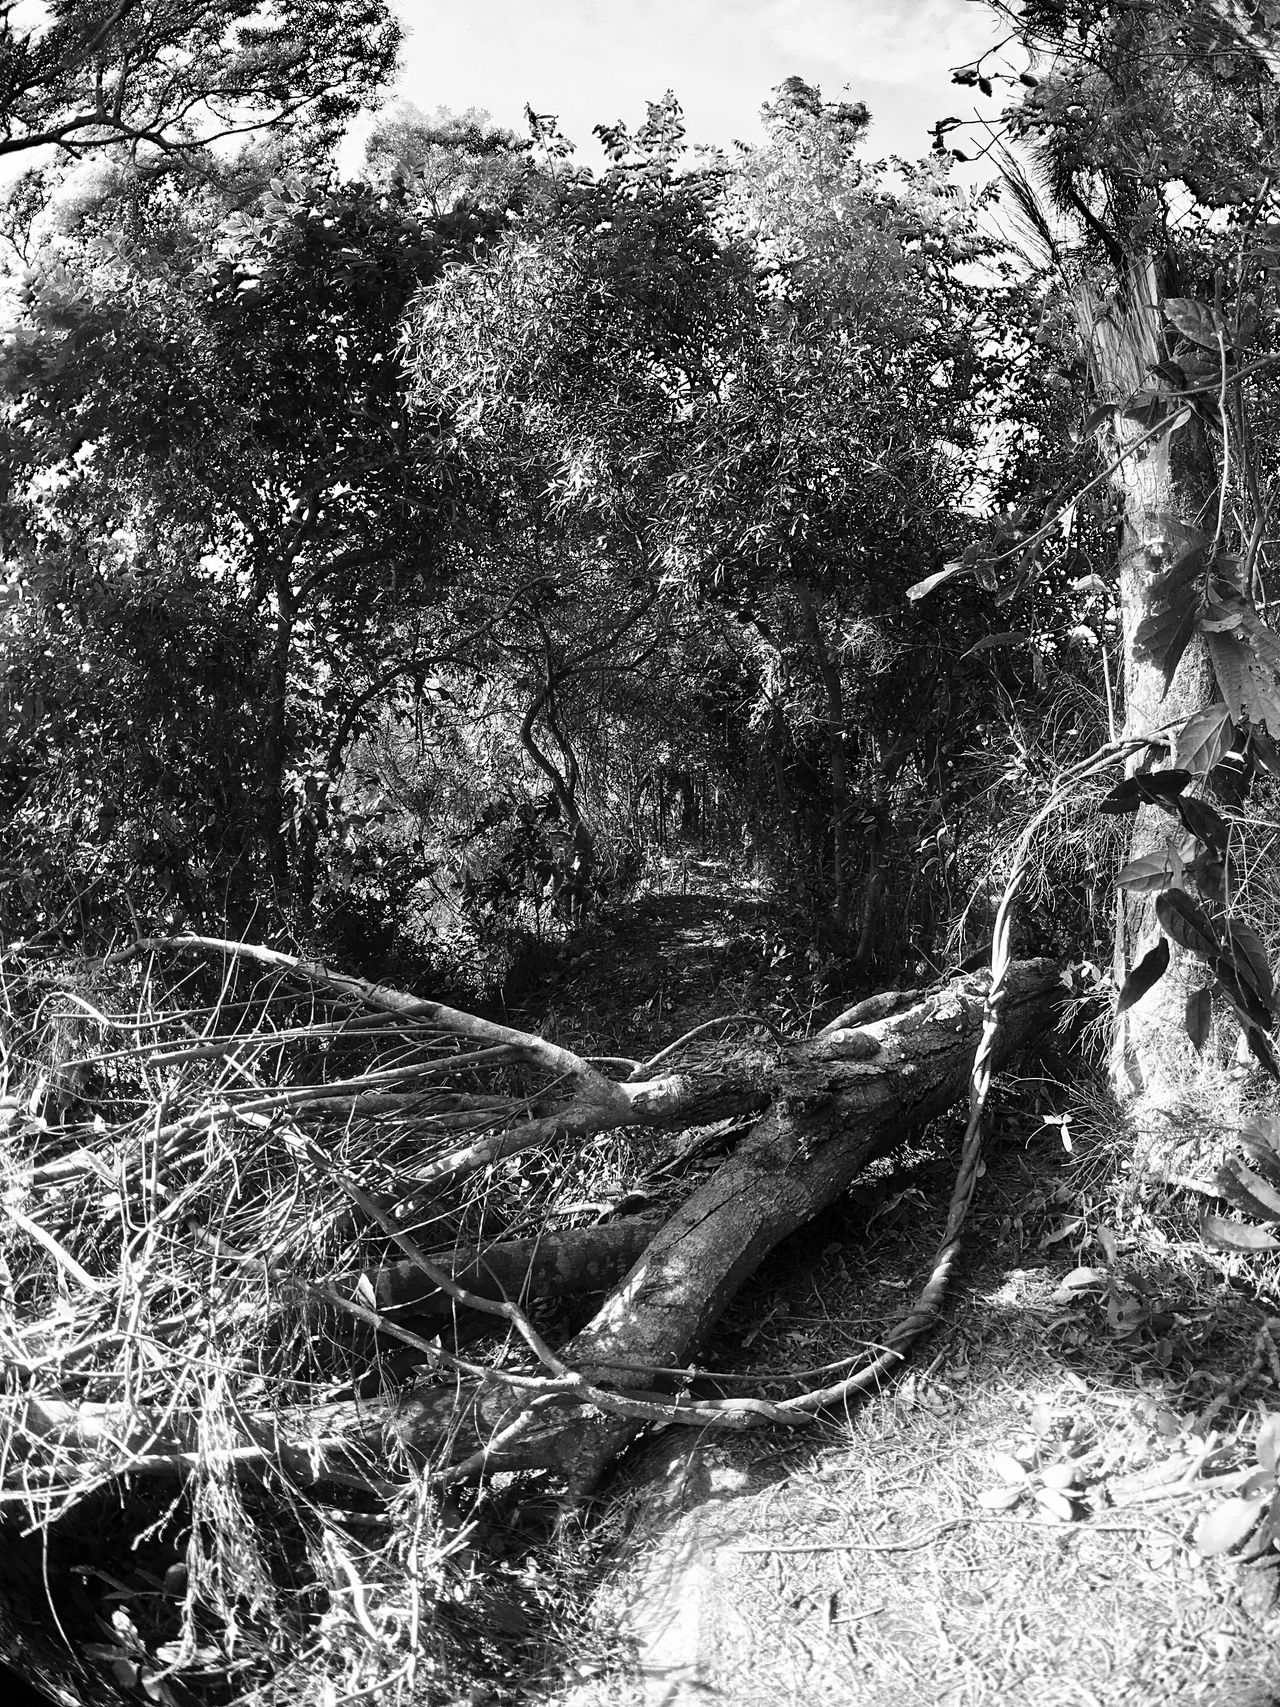 Tree Nature Forest Growth Tranquility Non-urban Scene Sunlight And Shadow Landscapes IPhoneography Moment Lens Superfish Sun Light Through Trees Light And Shadow Black And White Black & White Landscape Tranquil Scene Outdoors Day Branch Beauty In Nature Scenics Sky